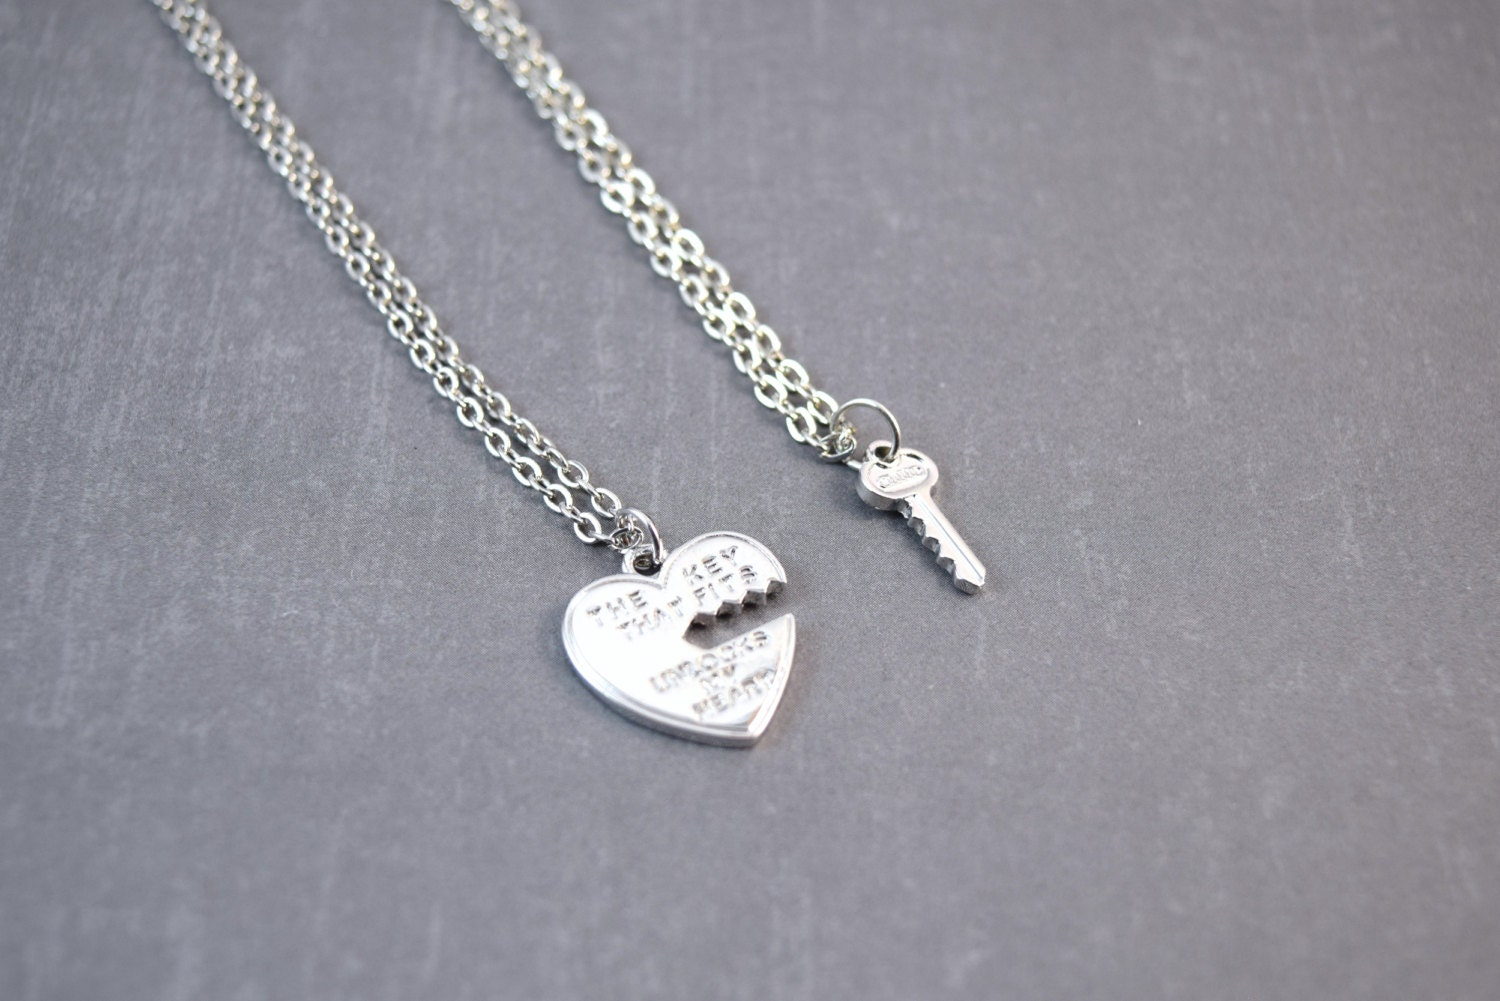 heart necklace for couples - photo #26